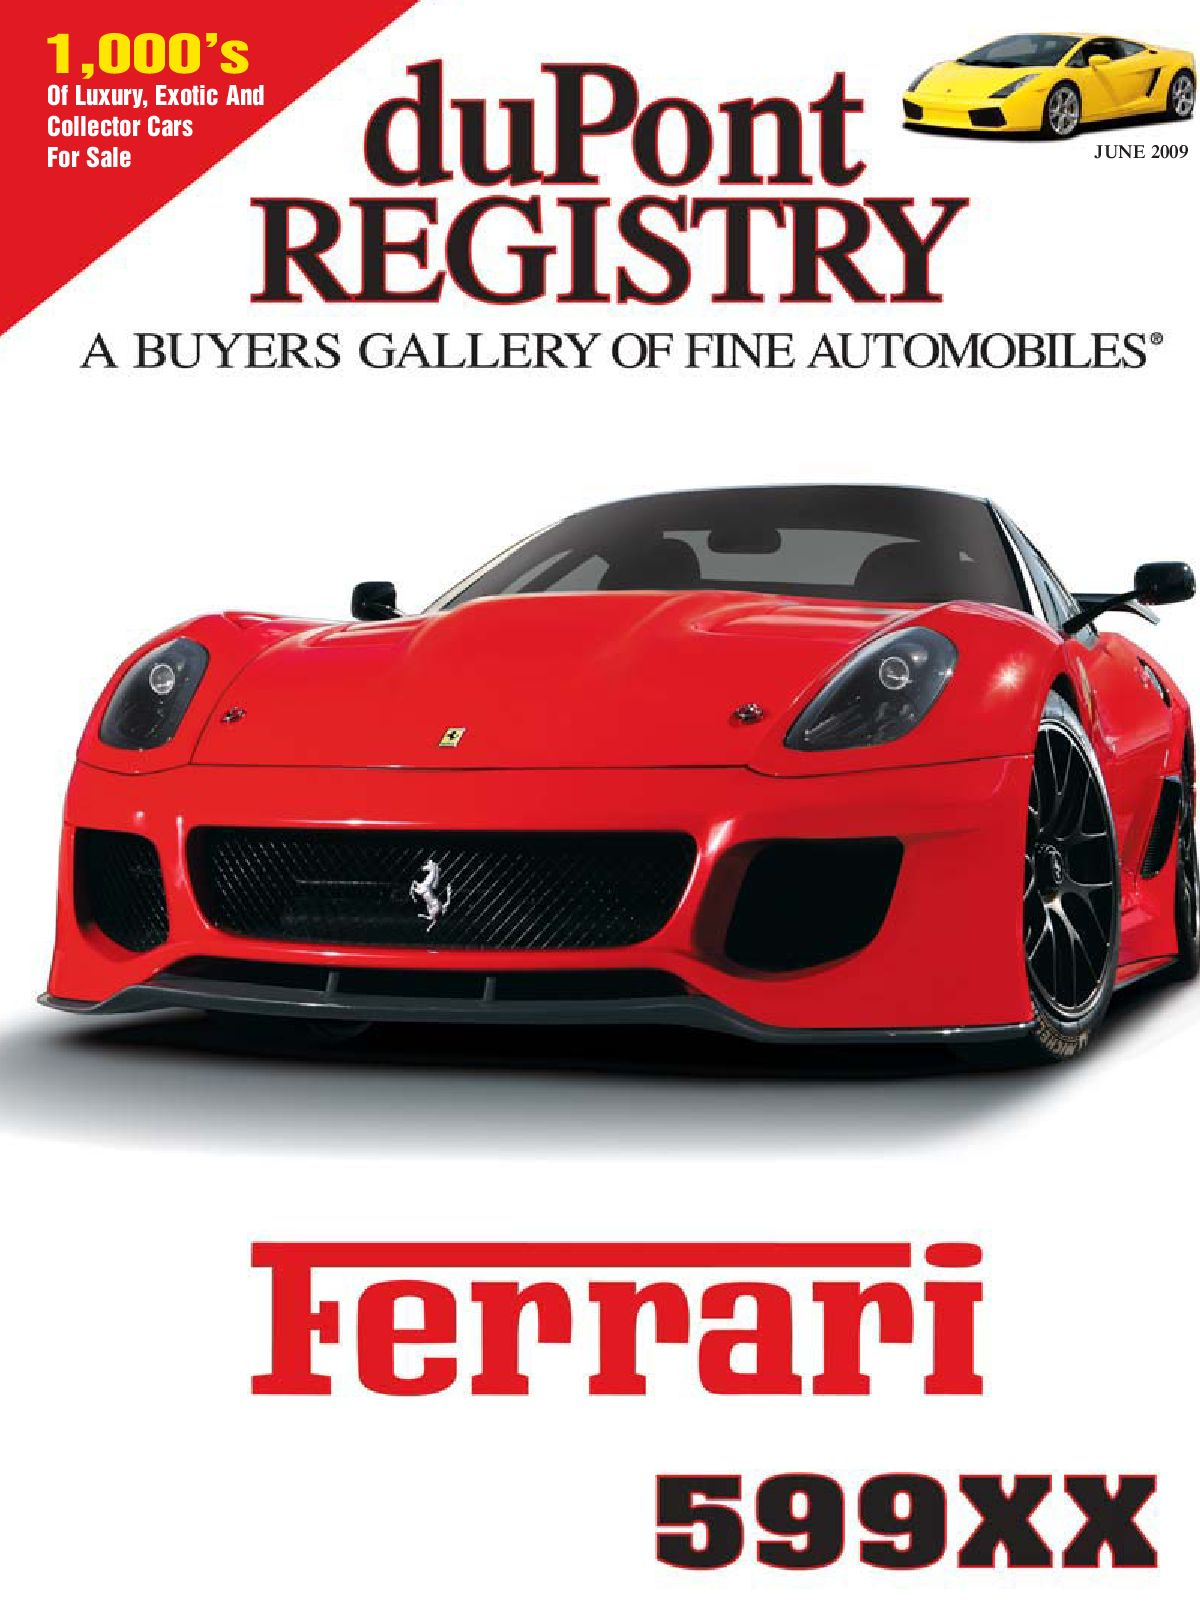 duPontREGISTRY Autos June 2009 by duPont REGISTRY issuu